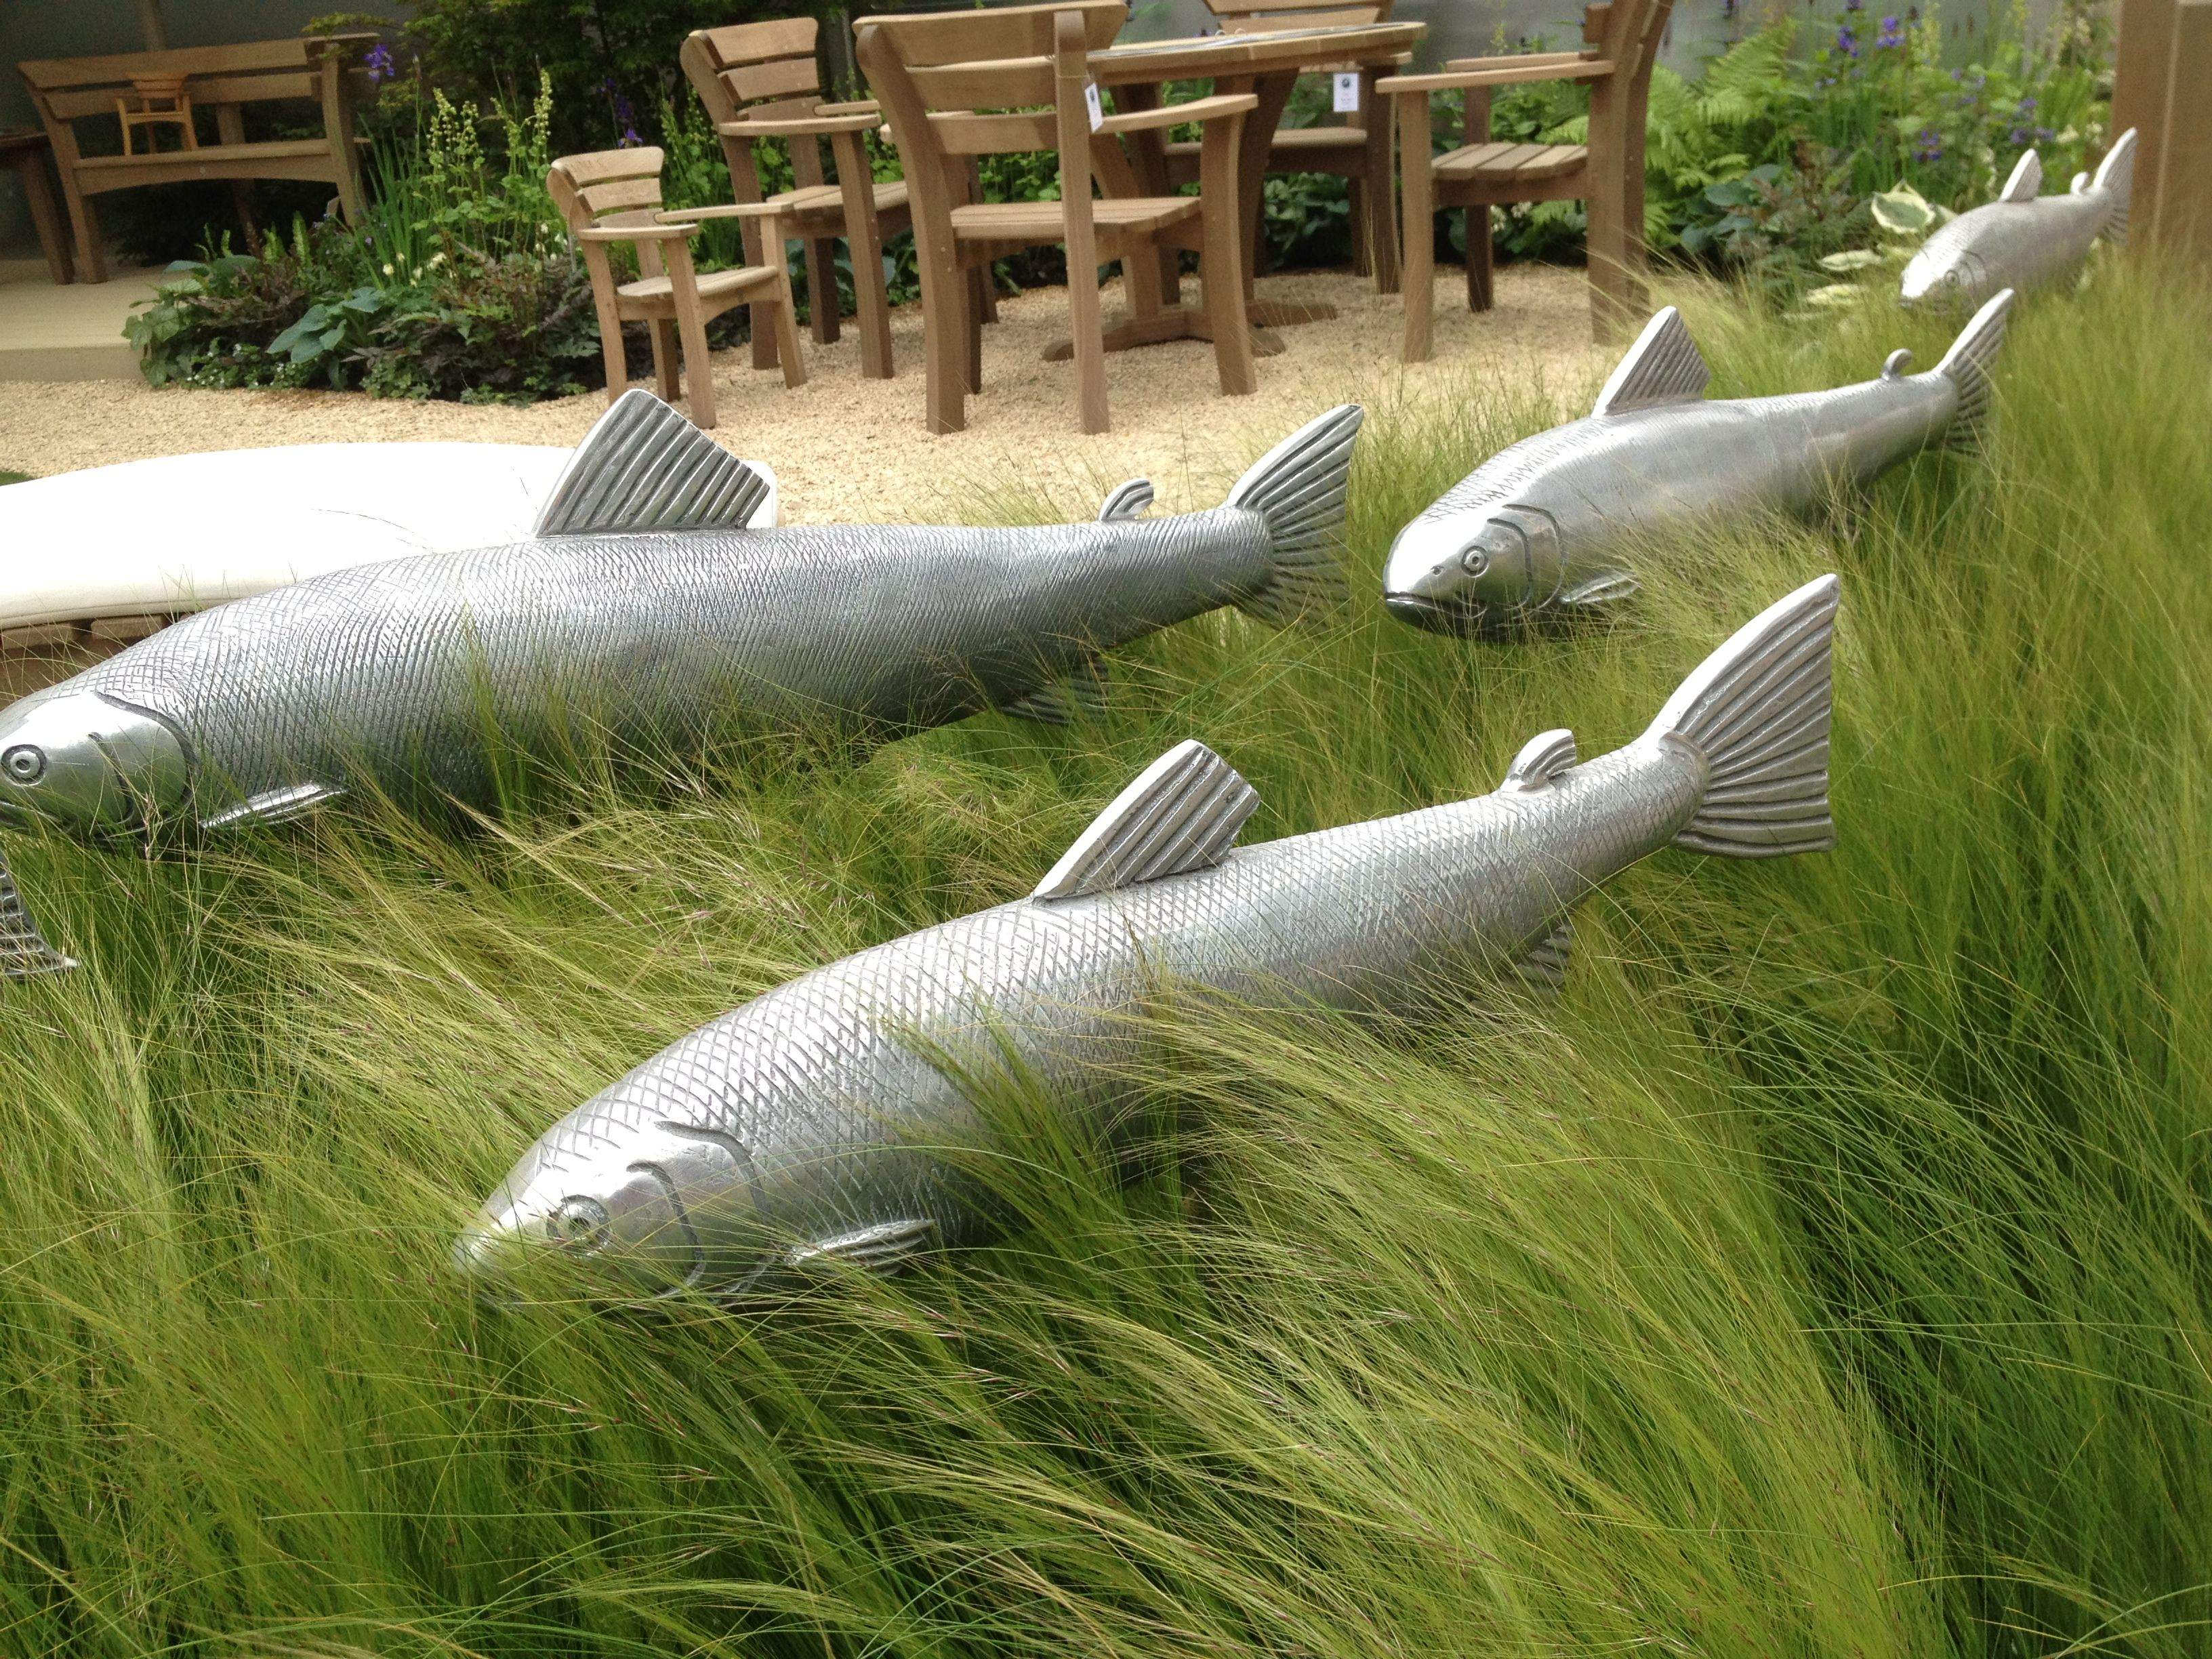 Delicieux We Love These Fish Sculptures By Paul Amey